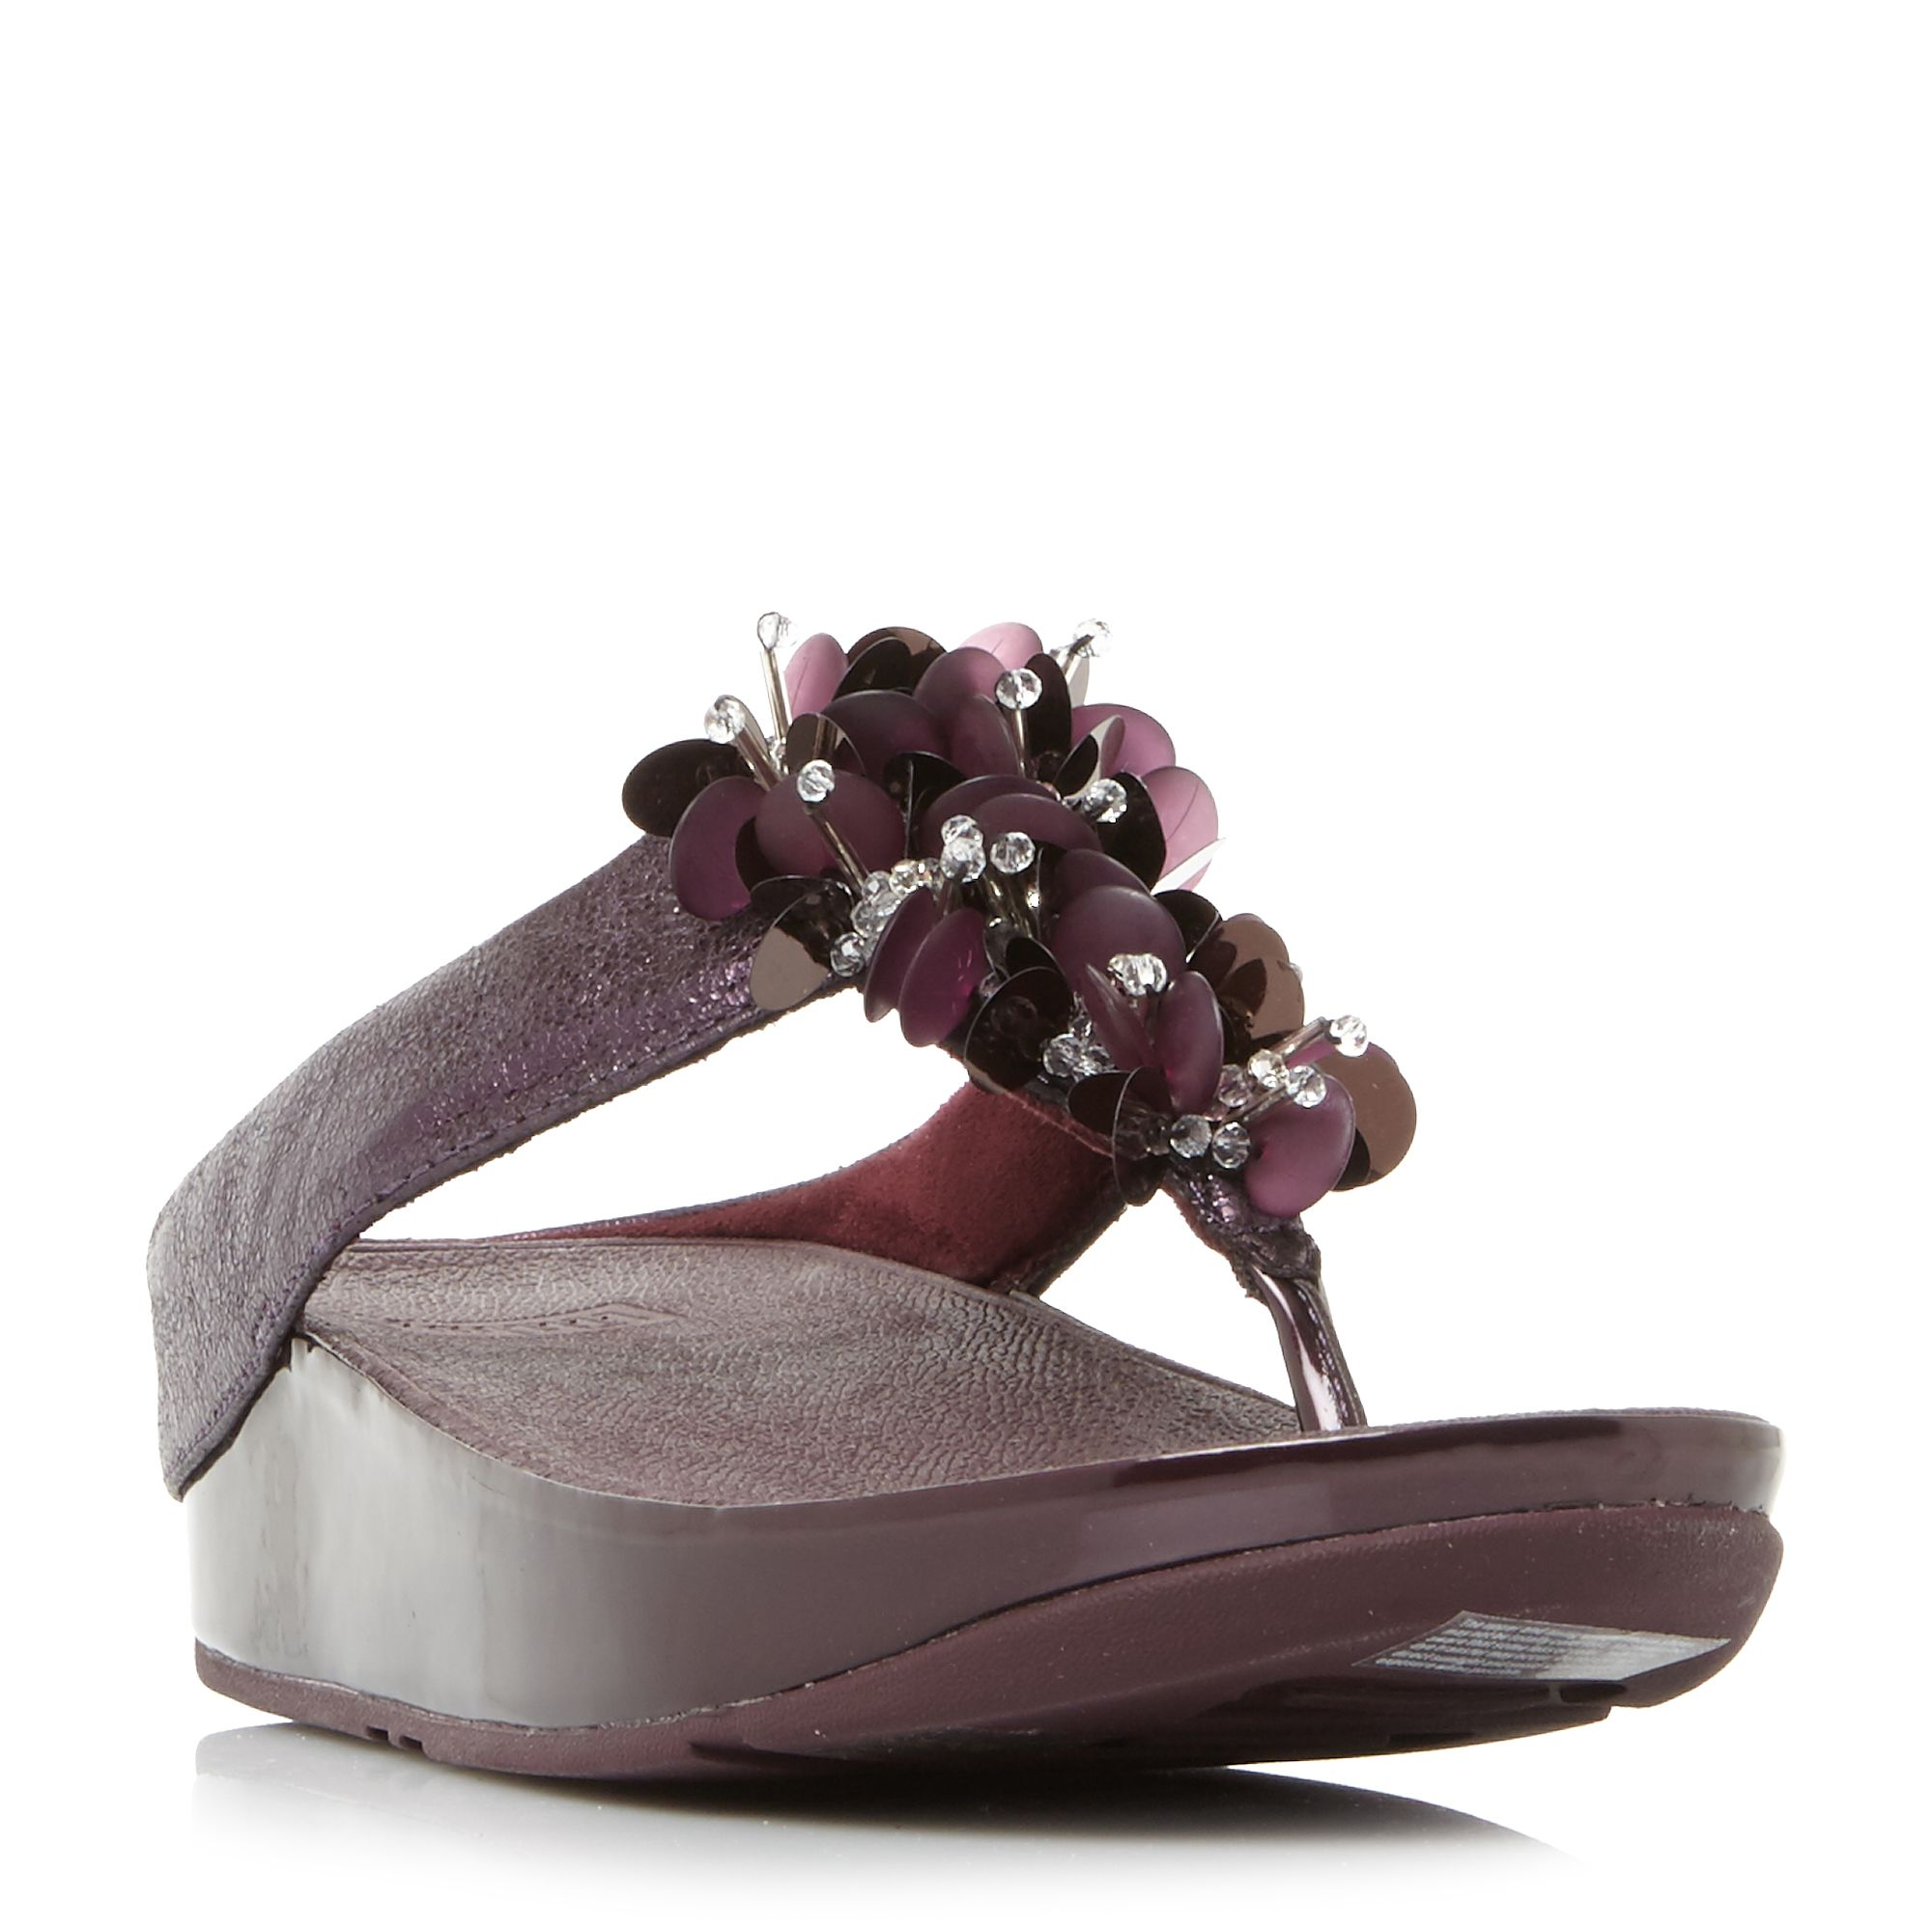 FitFlop Boogaloo Embellished Toepost Sandals, Purple